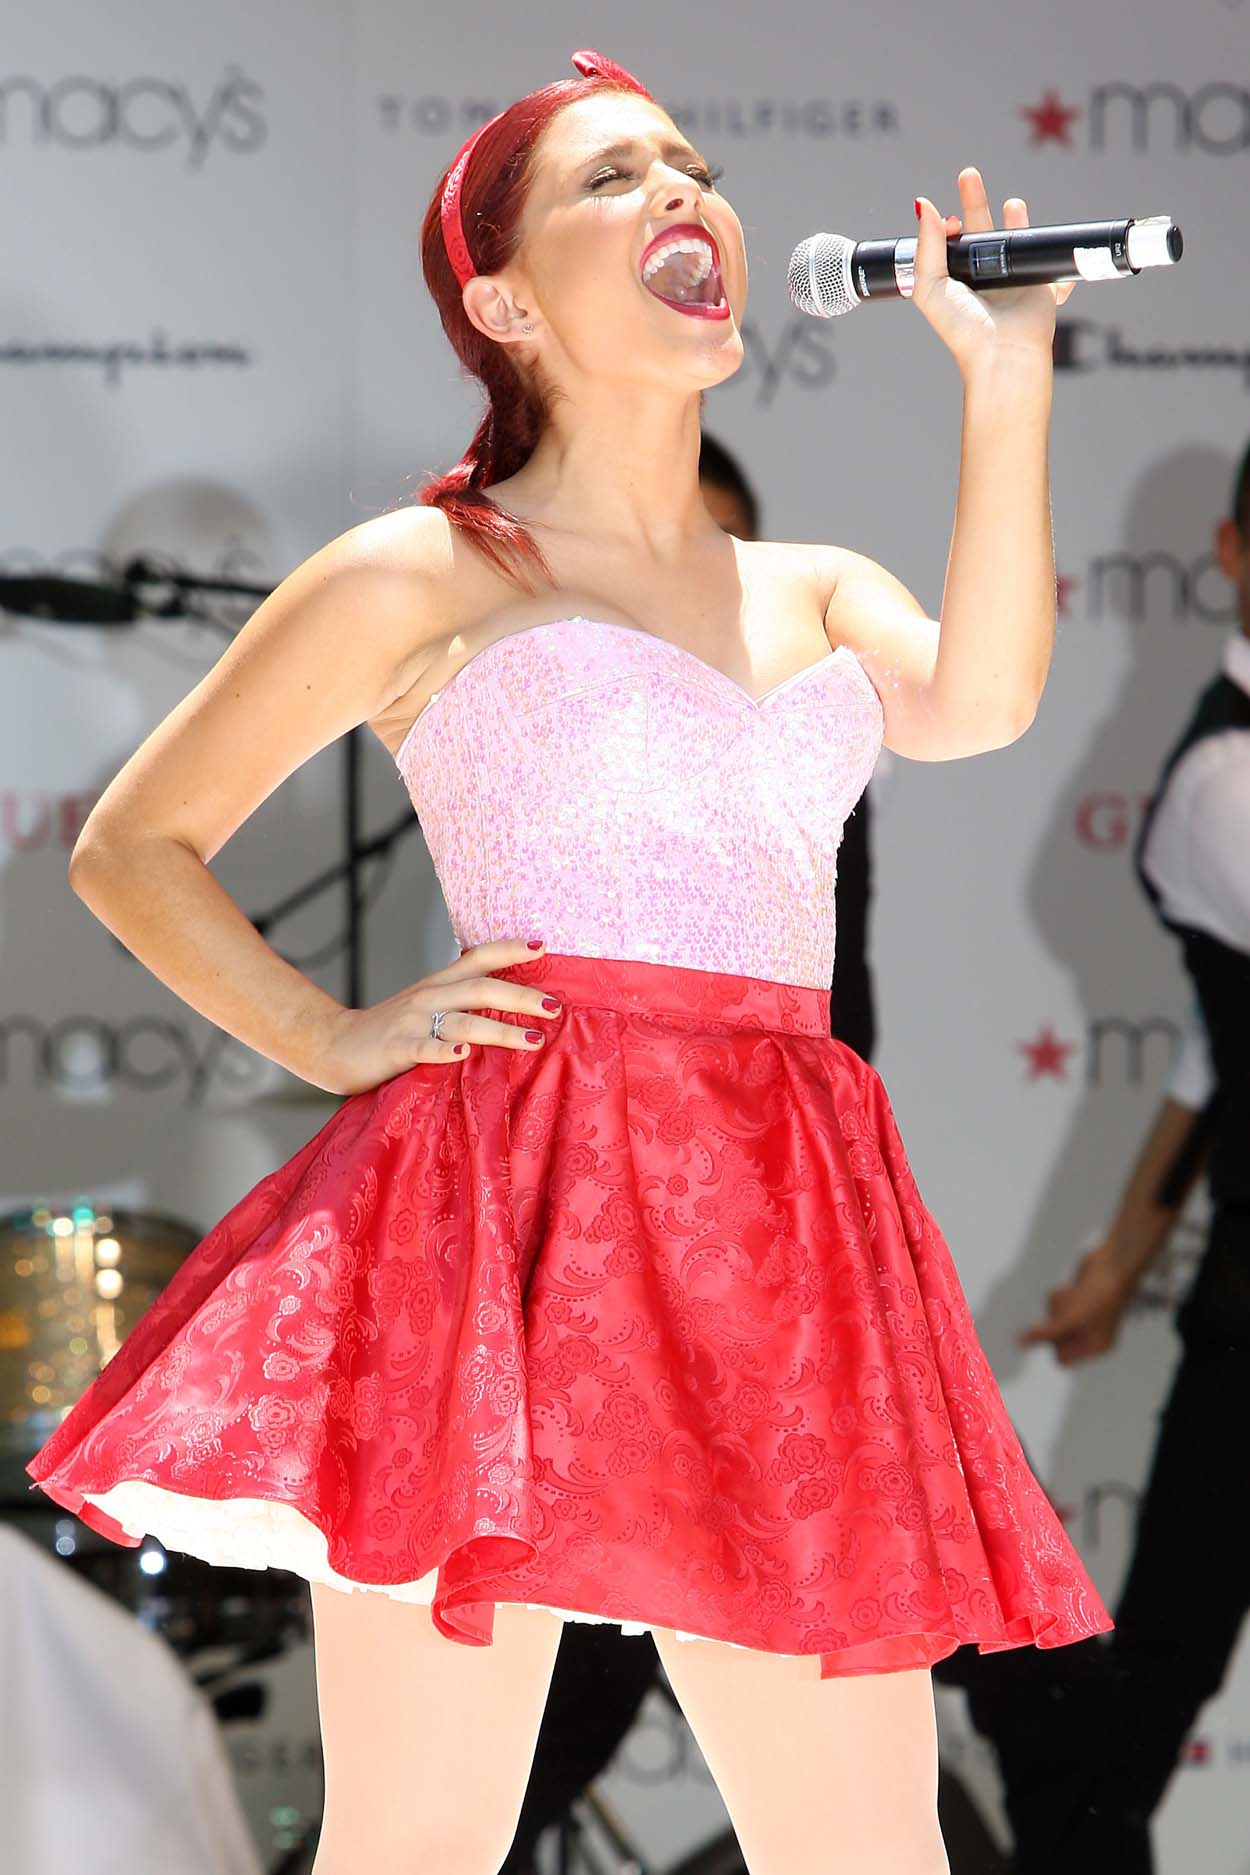 hpse_fullsize__3189132300_Ariana Grande performing at Macy_s Annual Summer Blowout Show in NYC on July 17, 2011 (3).jpg